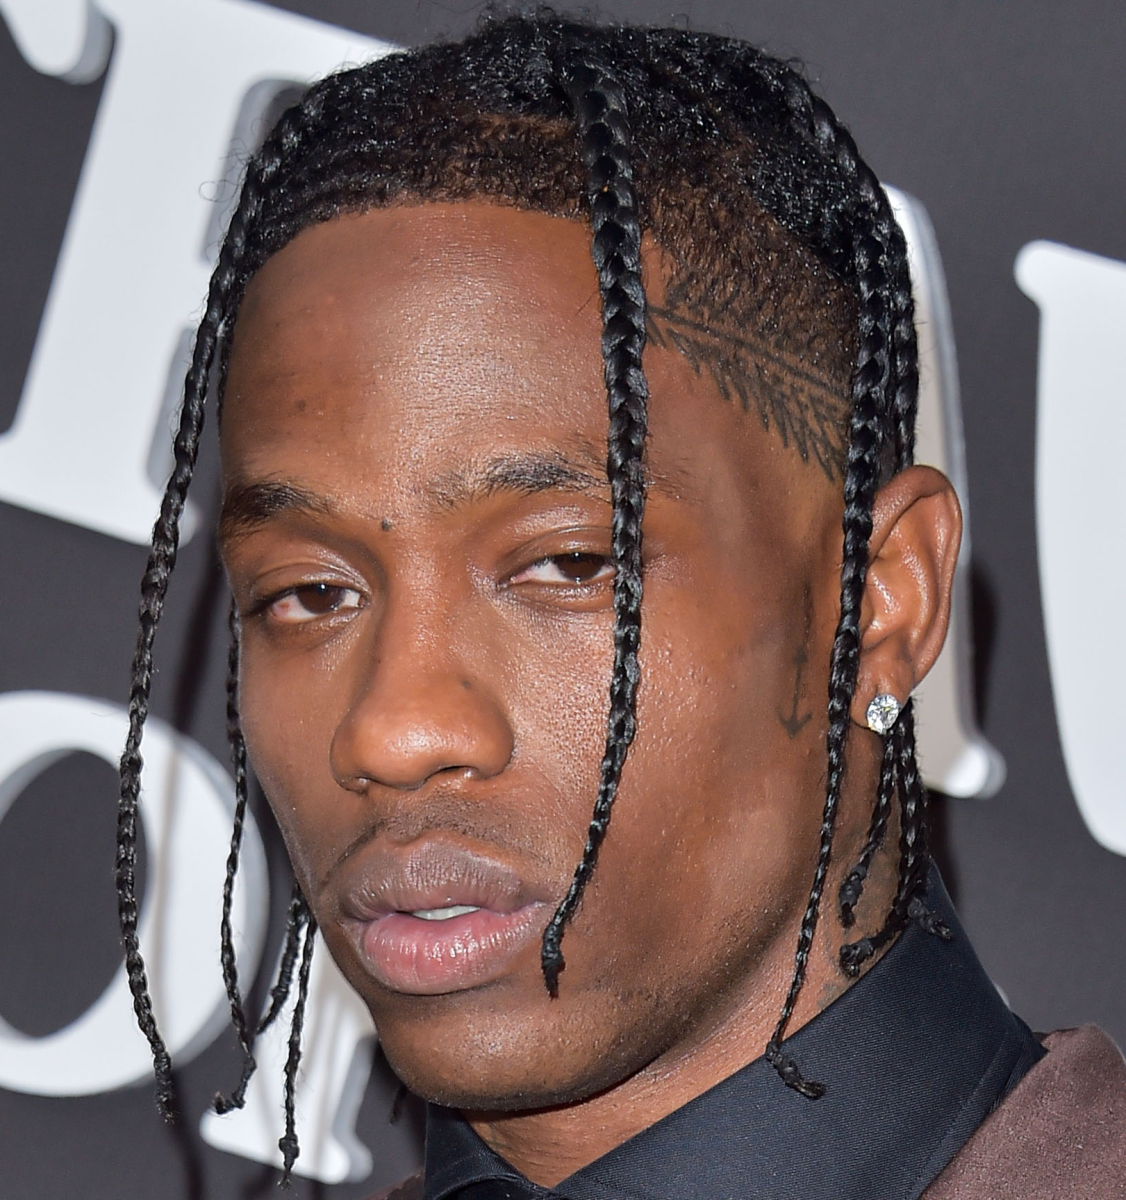 Awesome 50 Different Ways To Rock Asap Rocky Braids Strong Personality Asap Rocky Braids Long Hair Styles Braided Hairstyles